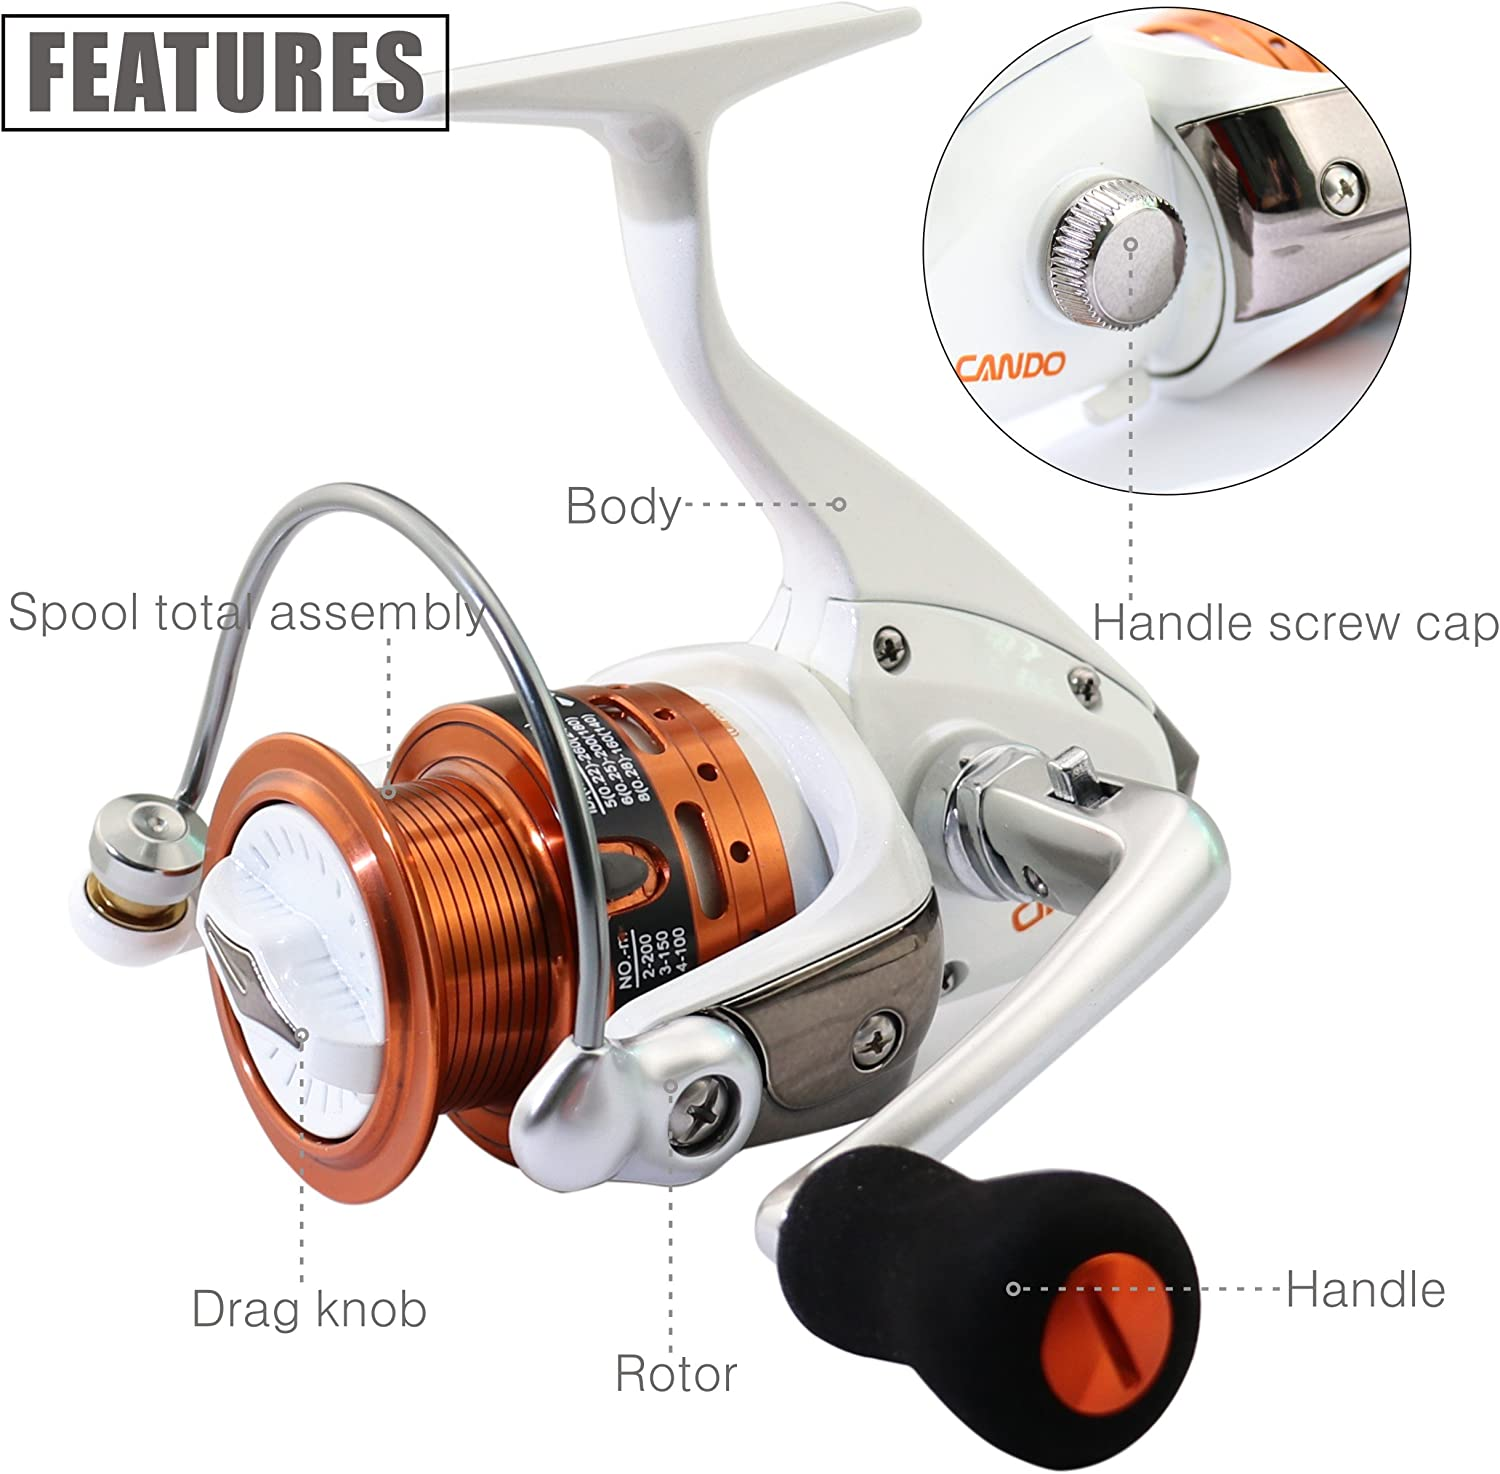 TICAs Sub-Brand CANDO Spinning Reel 4.5:1,8RRB+1RB-Left//Right Interchangeable Lightweight Fishing Reel Wheel,Aluminum Alloy Reel